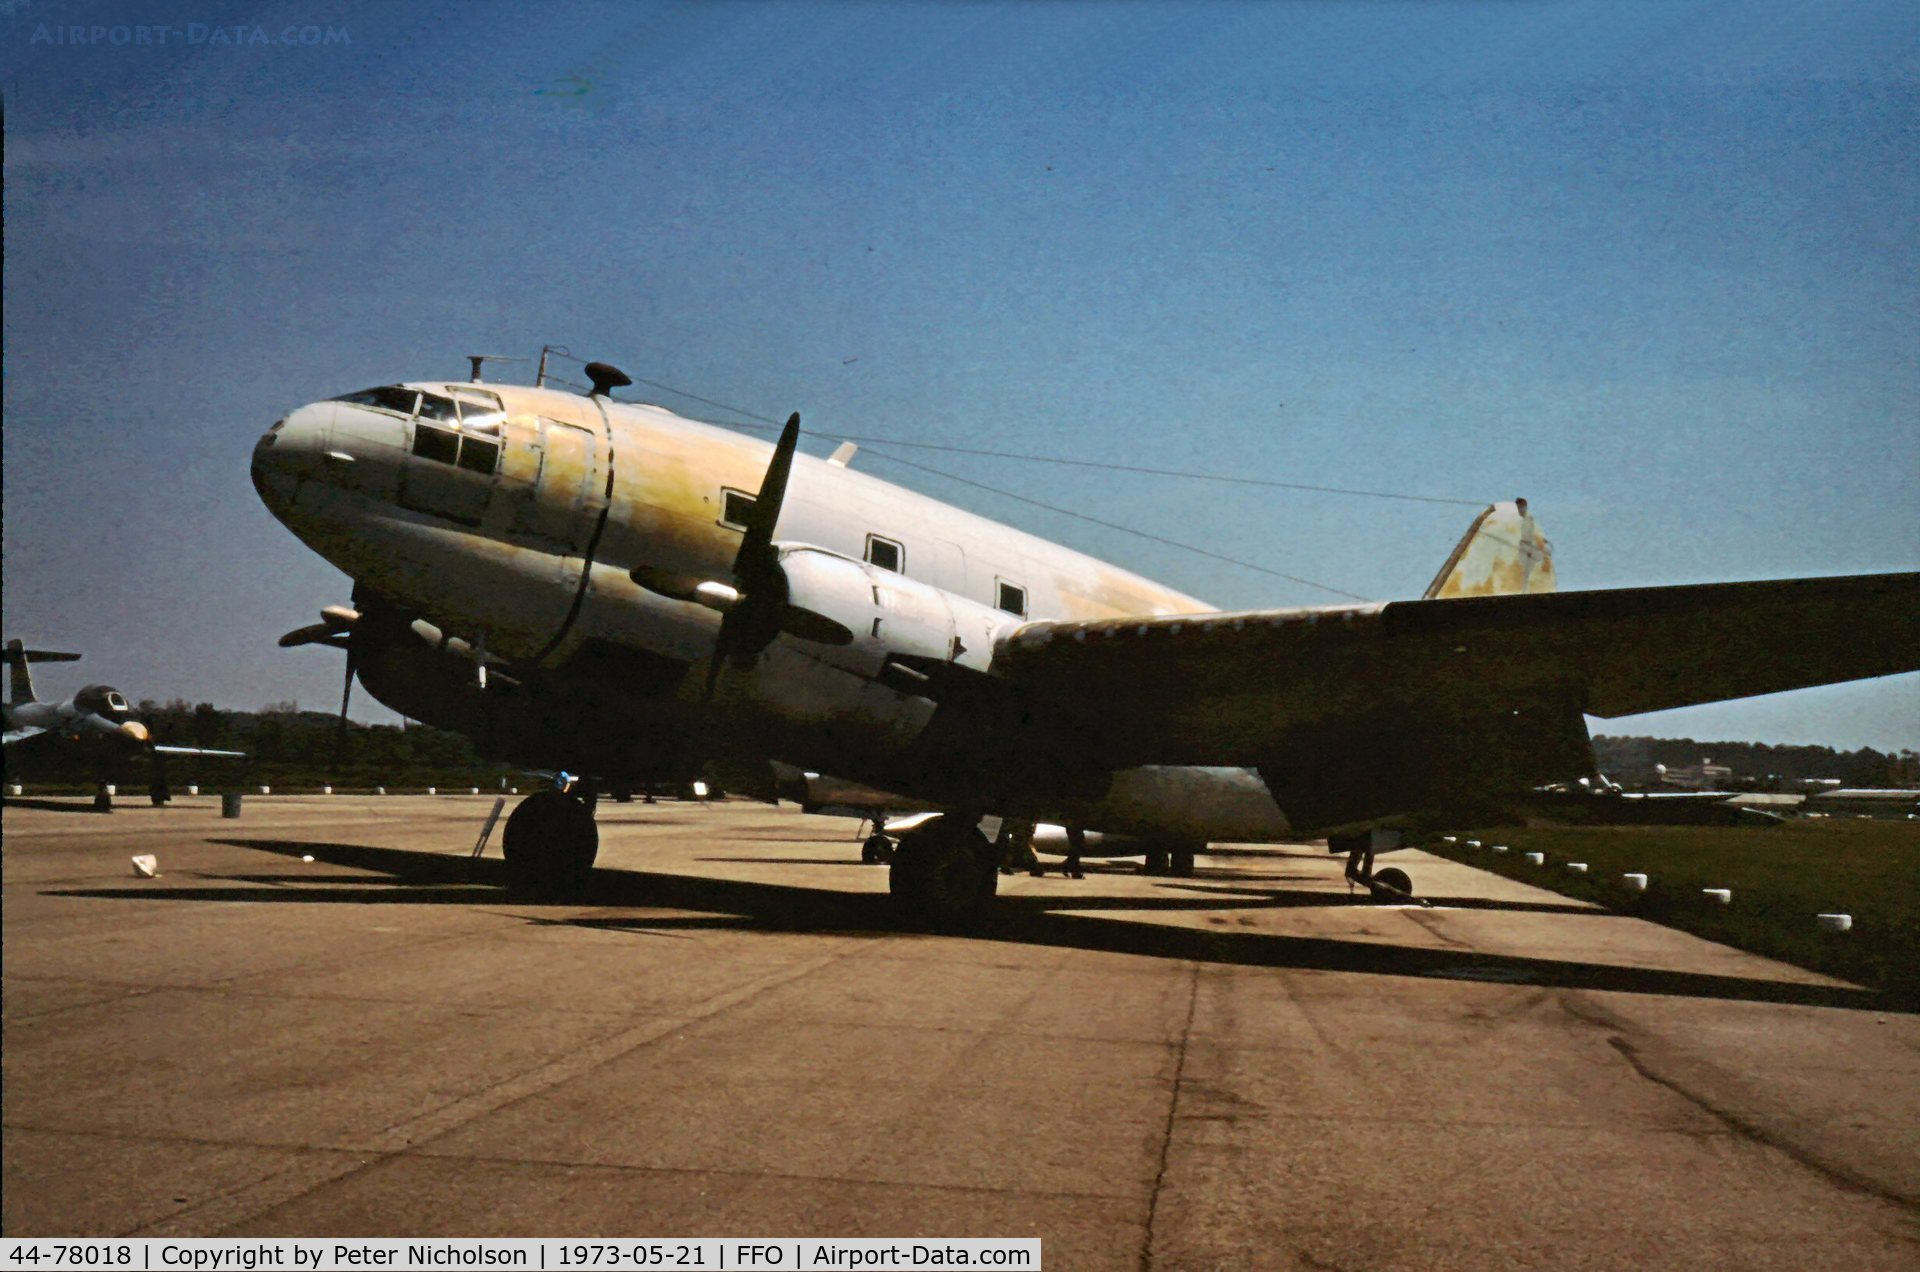 44-78018, 1944 Curtiss C-46D Commando C/N 33414, As displayed in the summer of 1973.